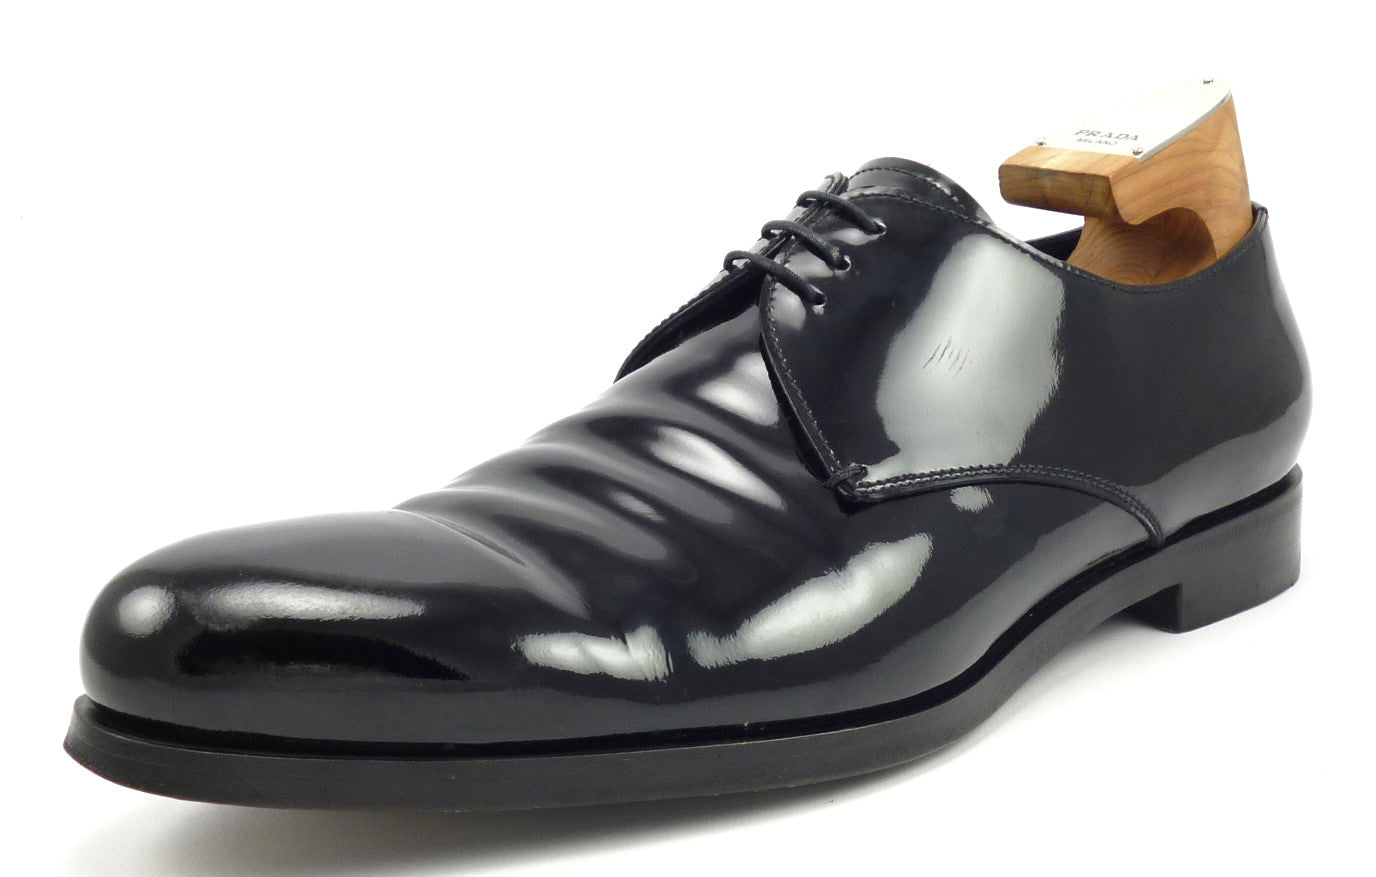 2d31468ebd0921 Prada Mens Shoes 11, 12 US Patent Leather Oxfords Black ...